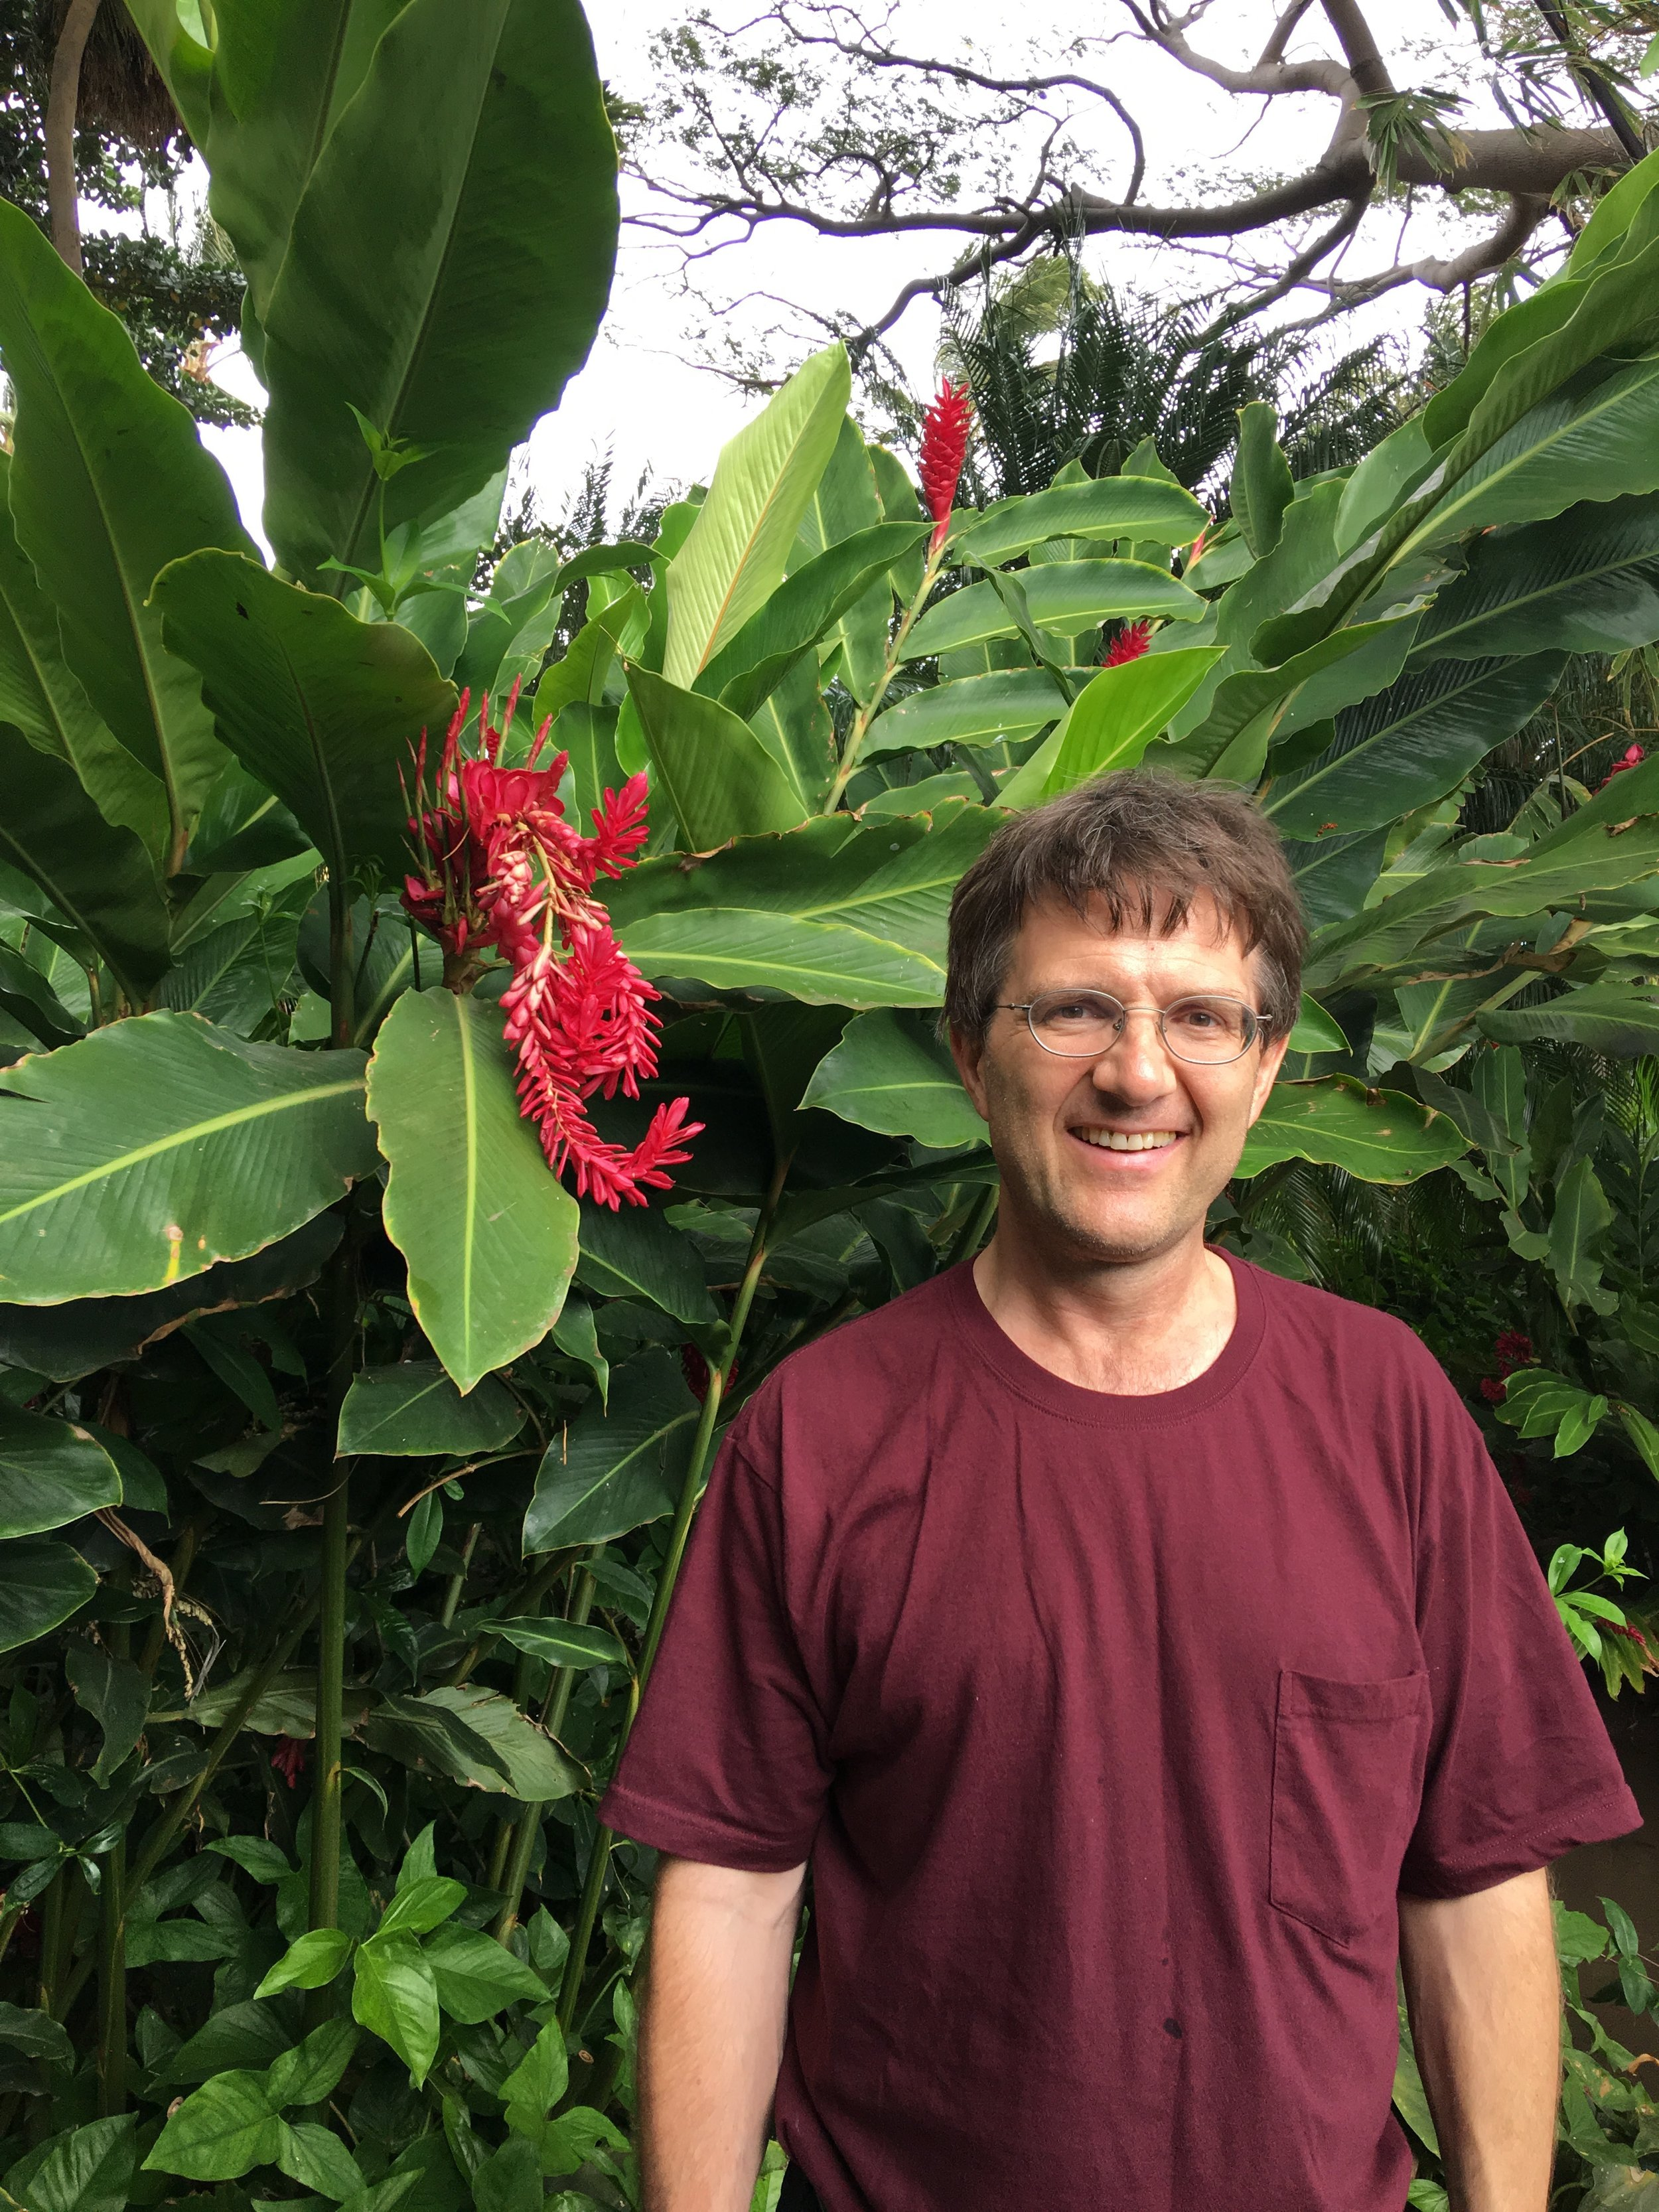 Miles Kimball in Maui, November 2017—1/3 of a century wedding anniversary trip. Photo by Gail Kimball. See Gail's guest posts    here    and    here   .